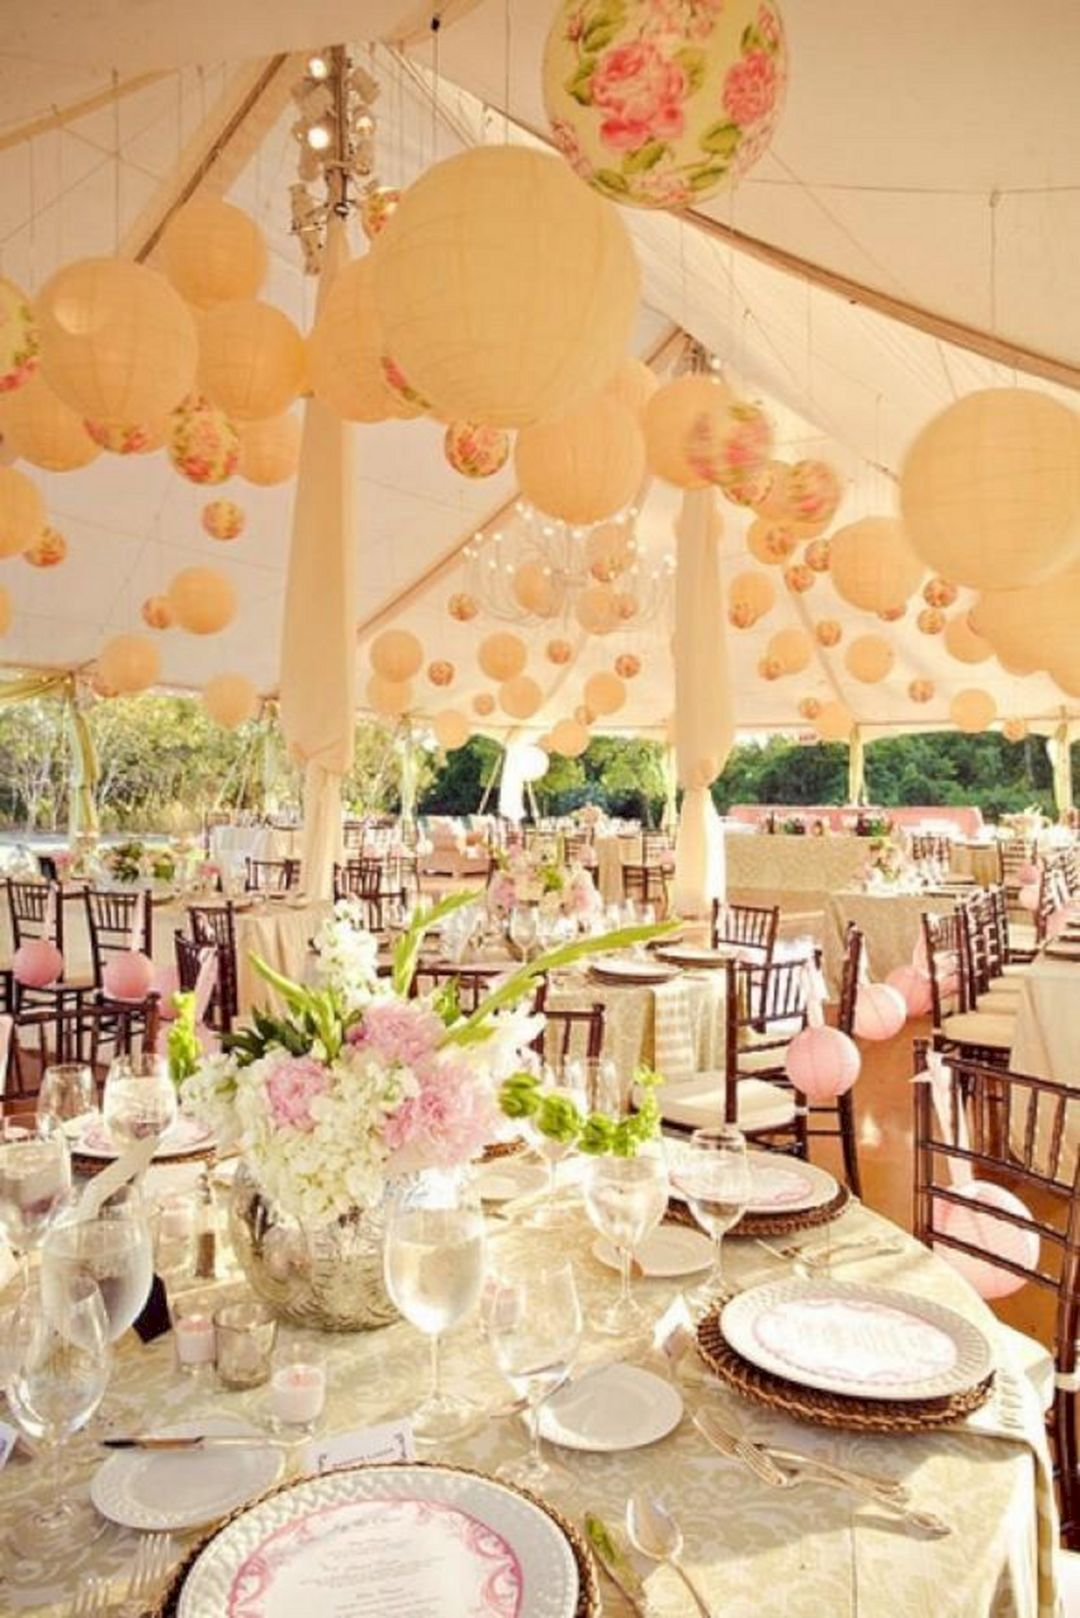 Wedding decoration ideas 2018   Most Beautiful Spring Wedding Decor Ideas   Spring weddings